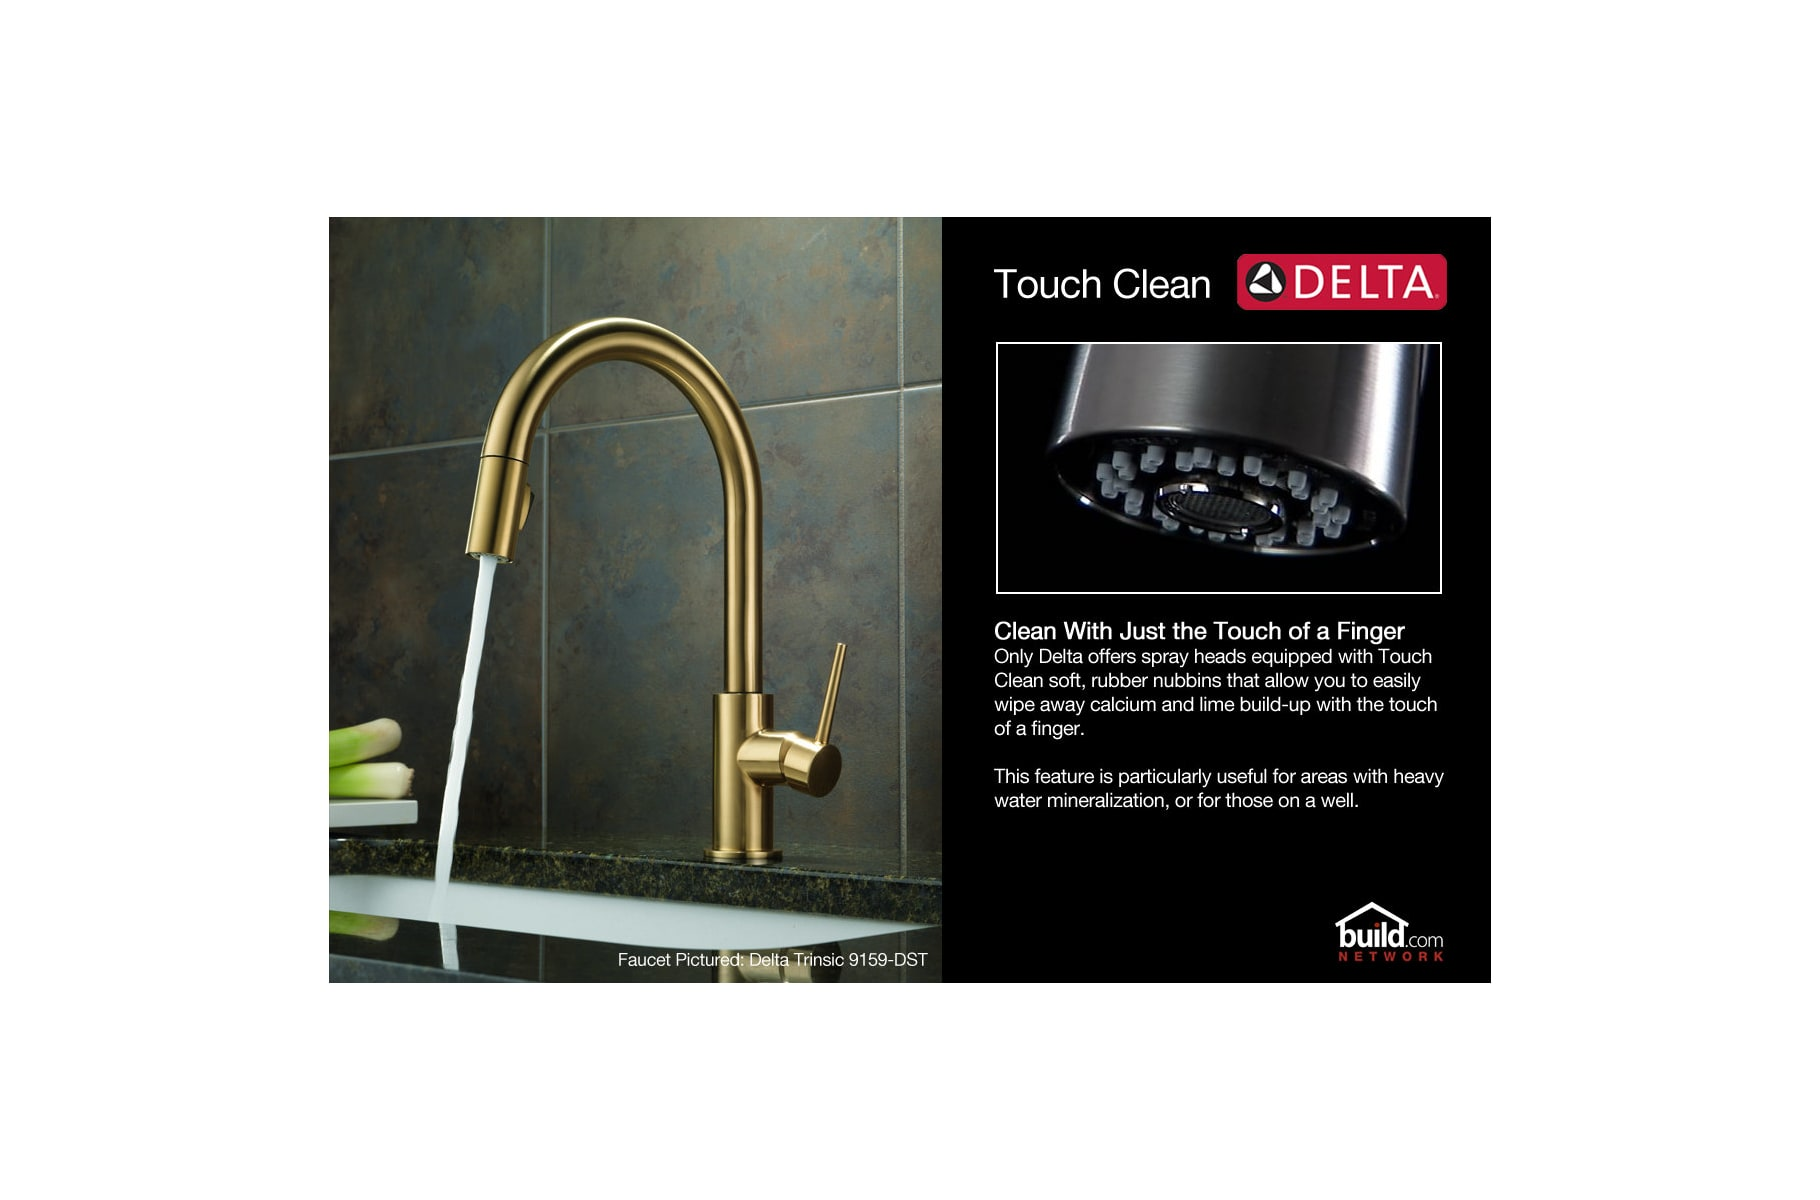 Build Smart Kits B440179/D9192T-DSTRB Venetian Bronze Faucet Combo ...